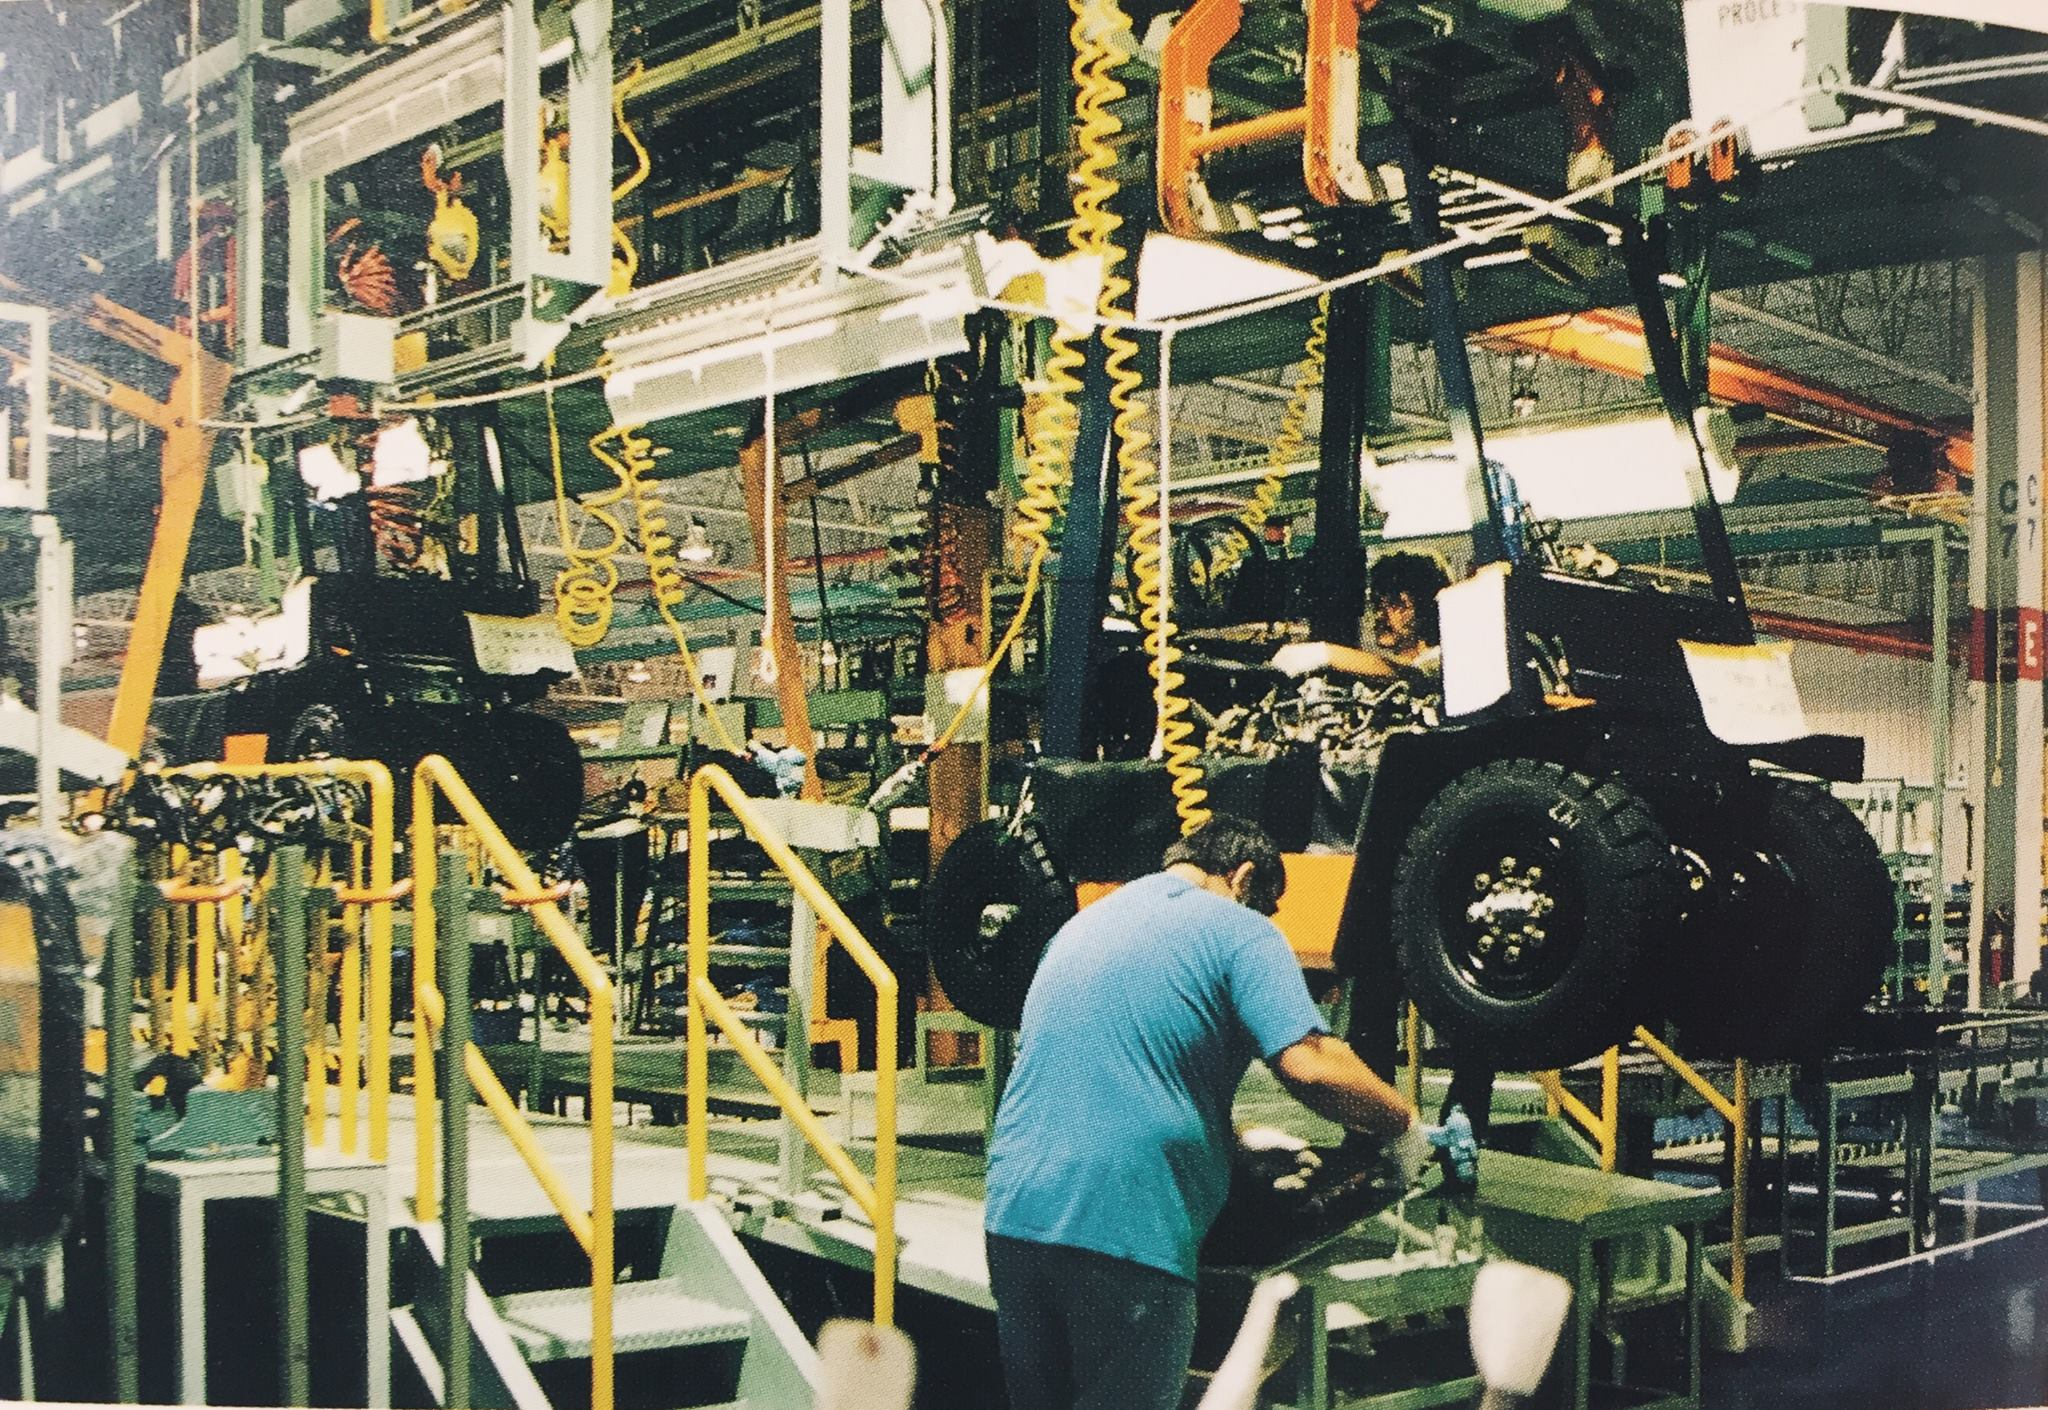 toyota-assembly-line-golf-carts